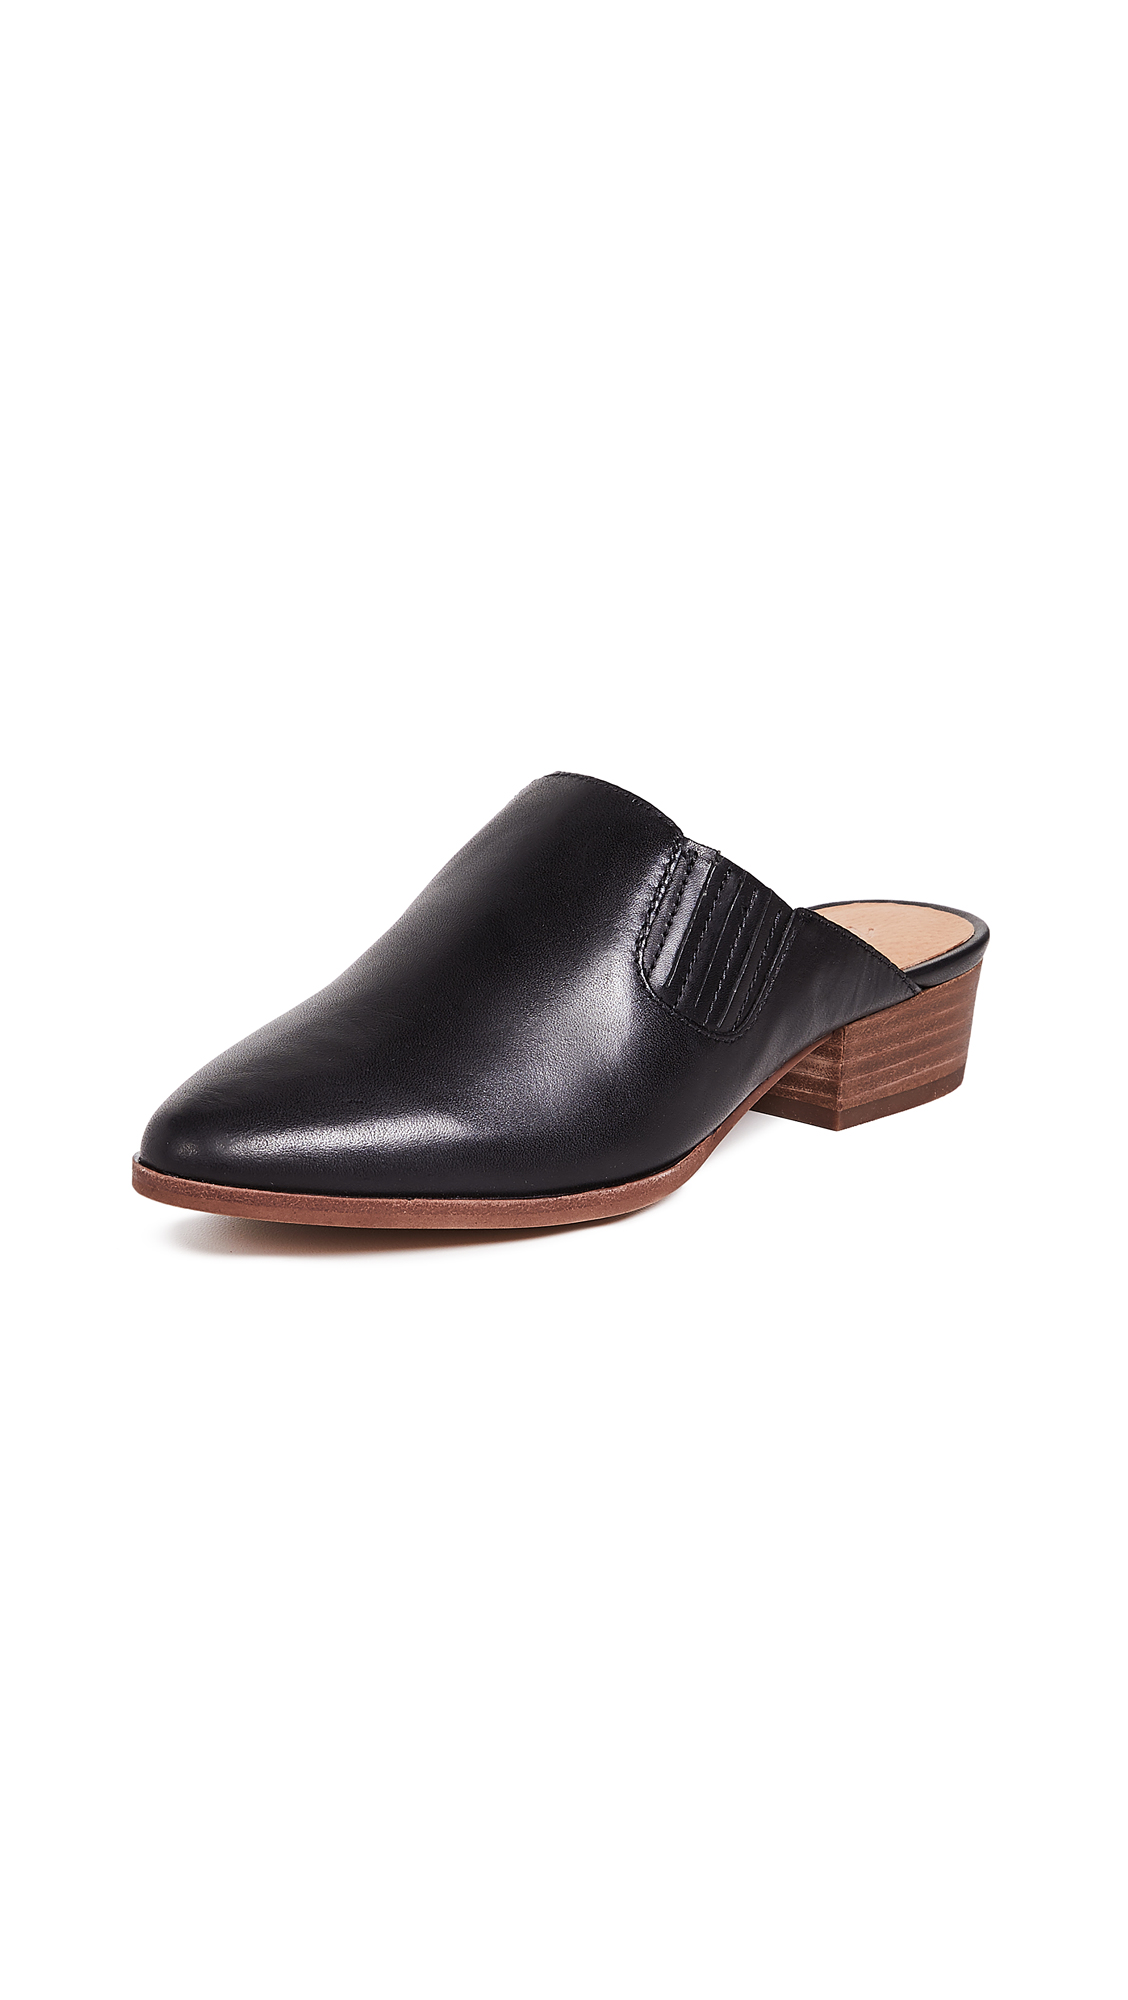 Madewell The Lanna Mules